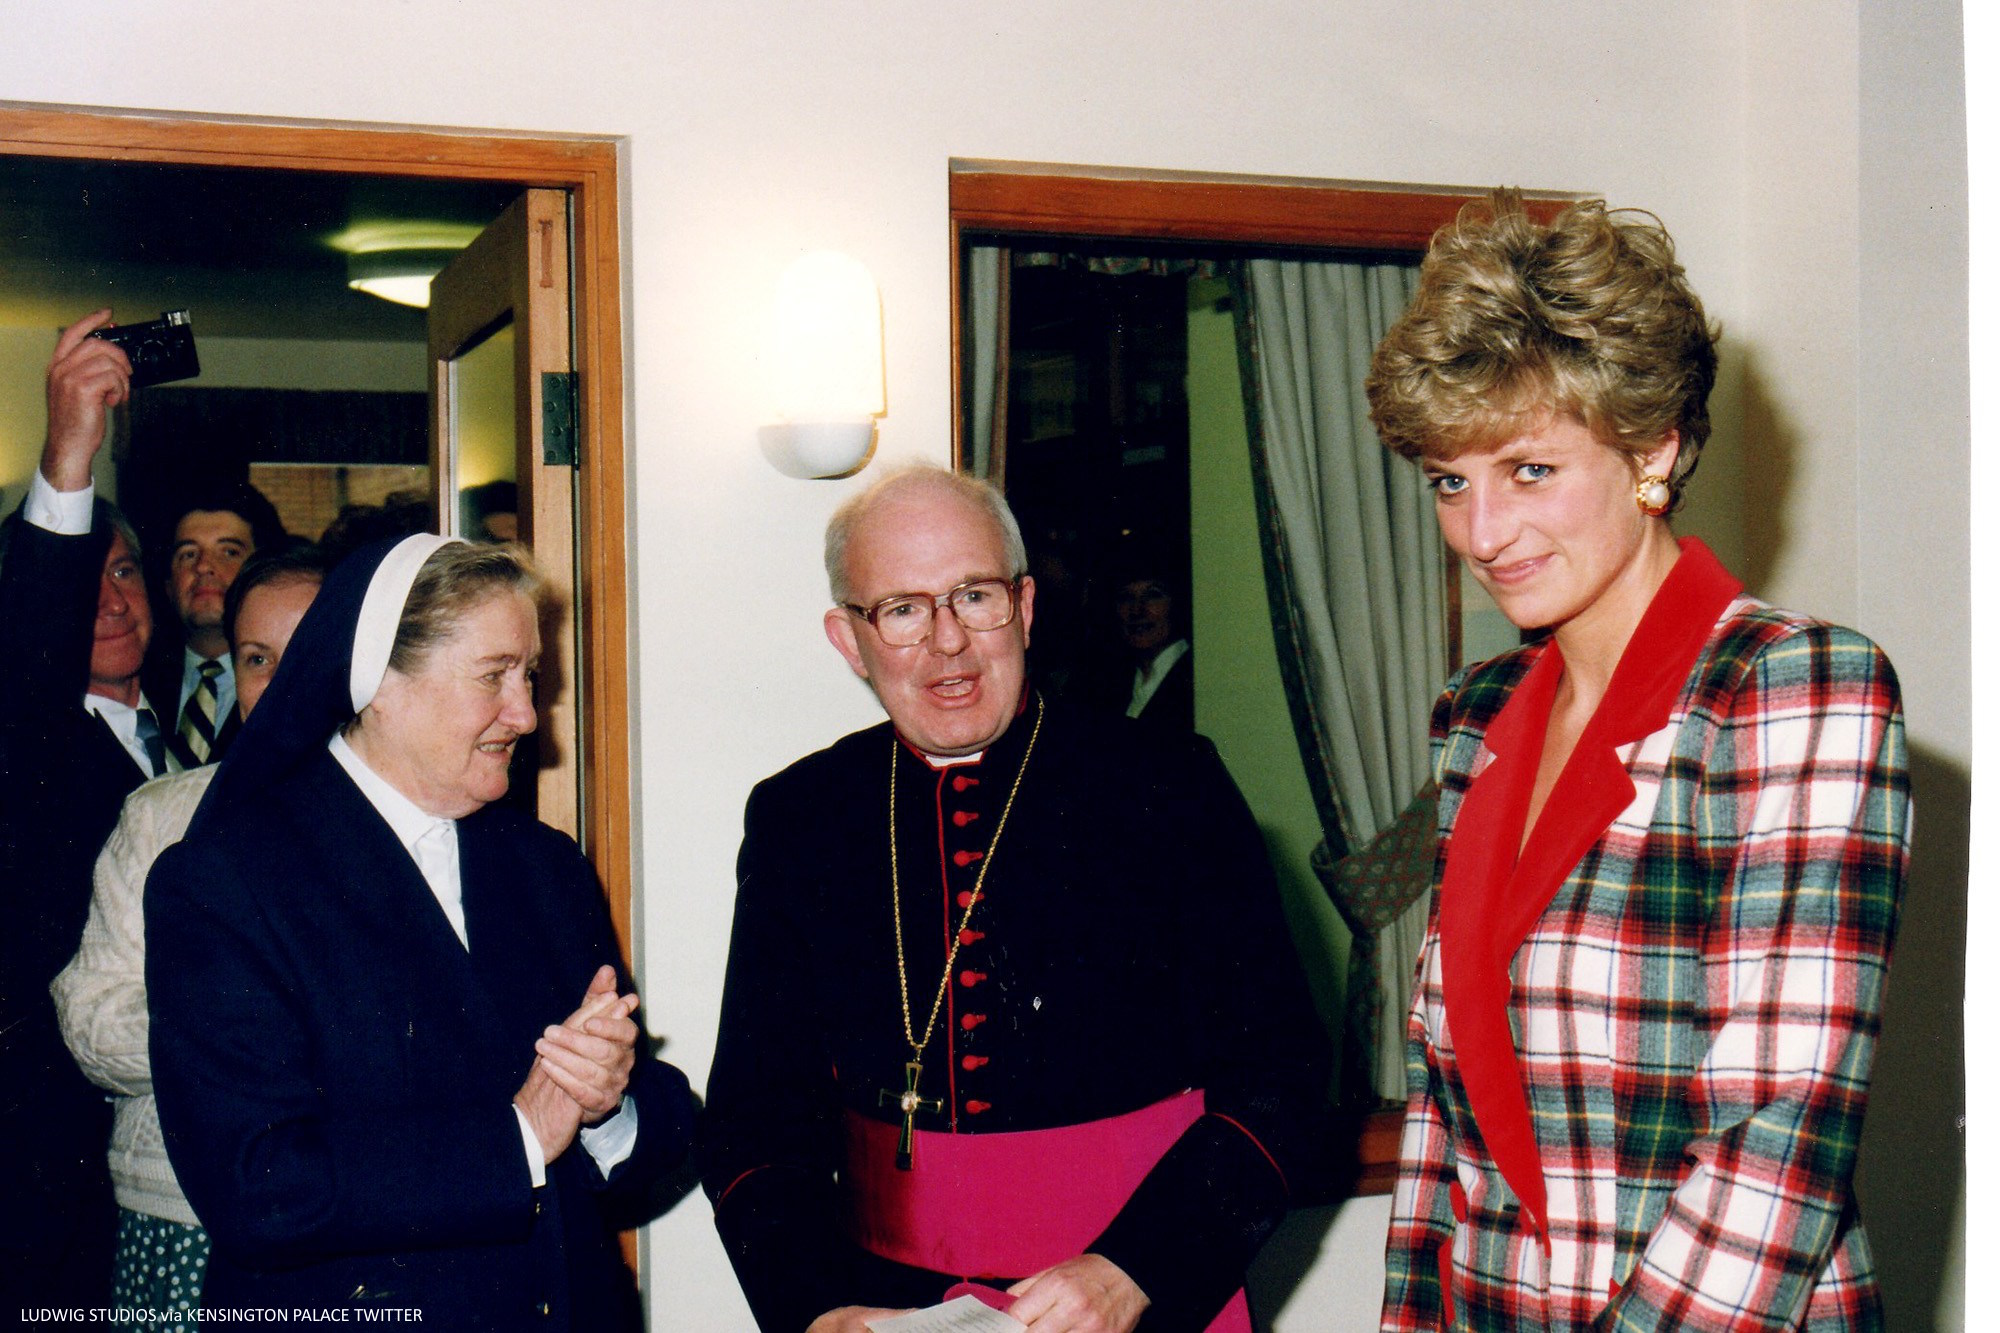 Hospice that Diana visited 25 years ago (today: 10/14/16) 10/14/16 Credit: Ludwig Studios